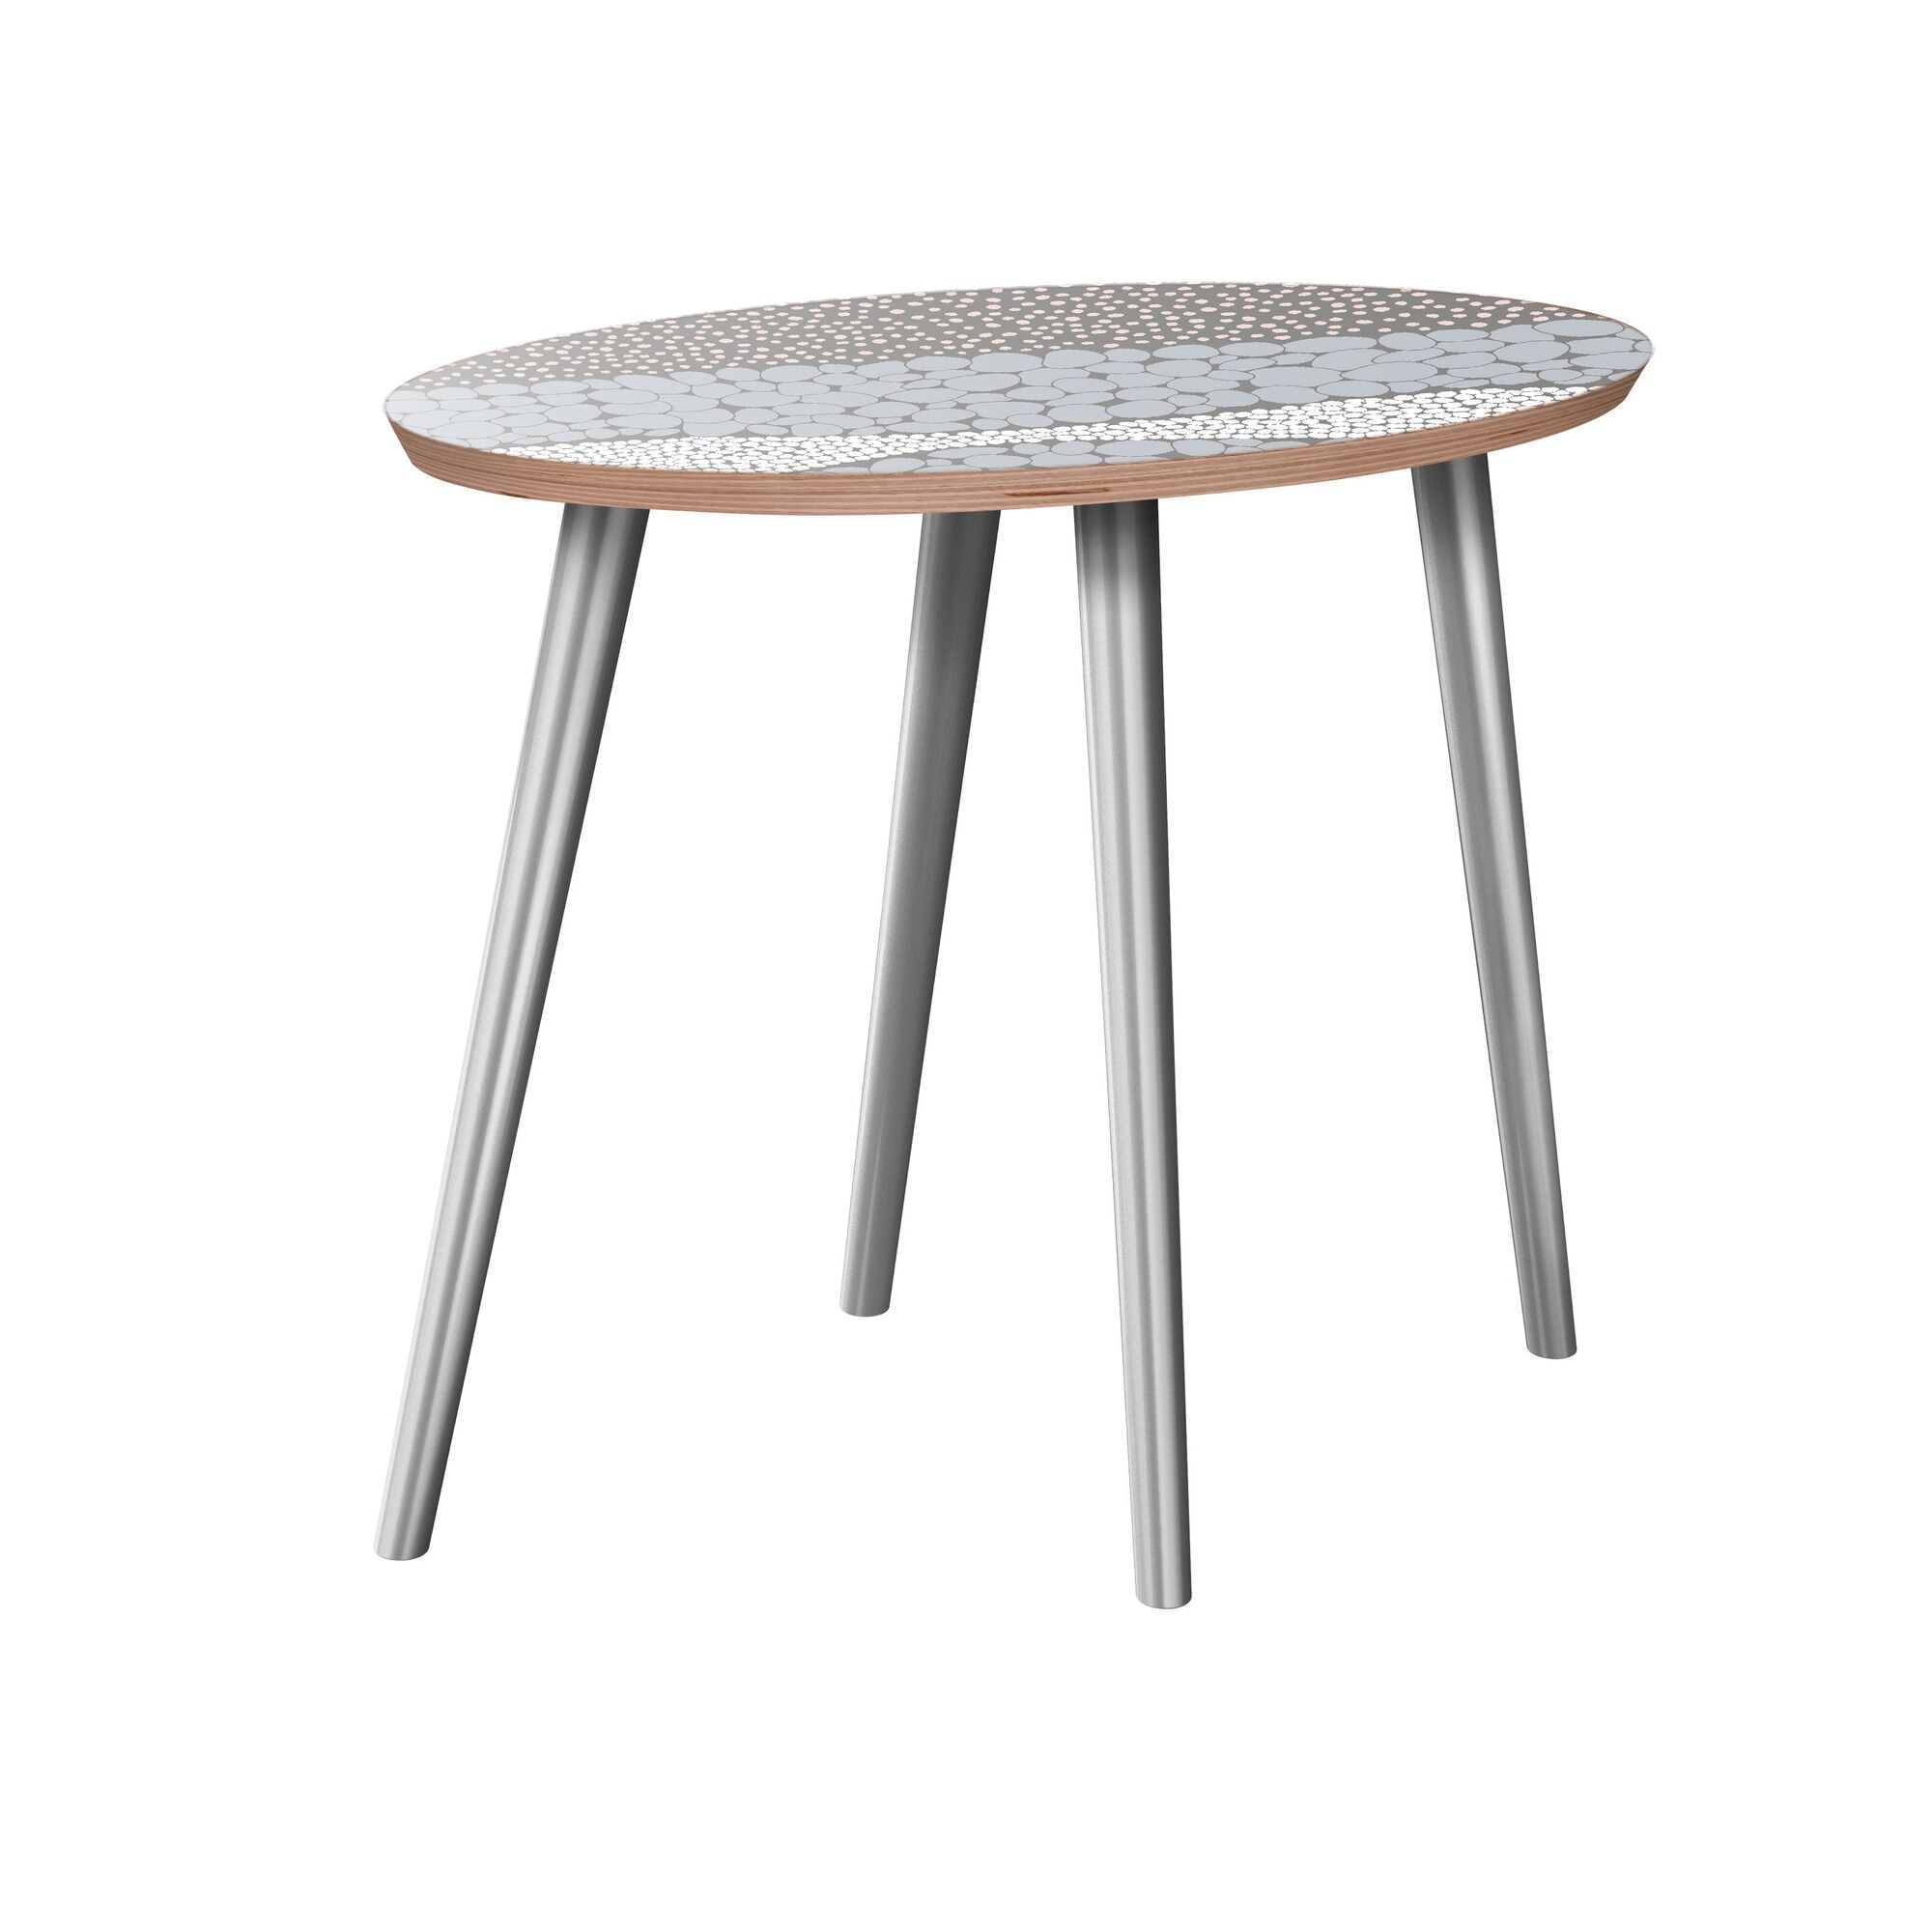 Gallien End Table Table Base Color: Chrome, Table Top Color: Walnut